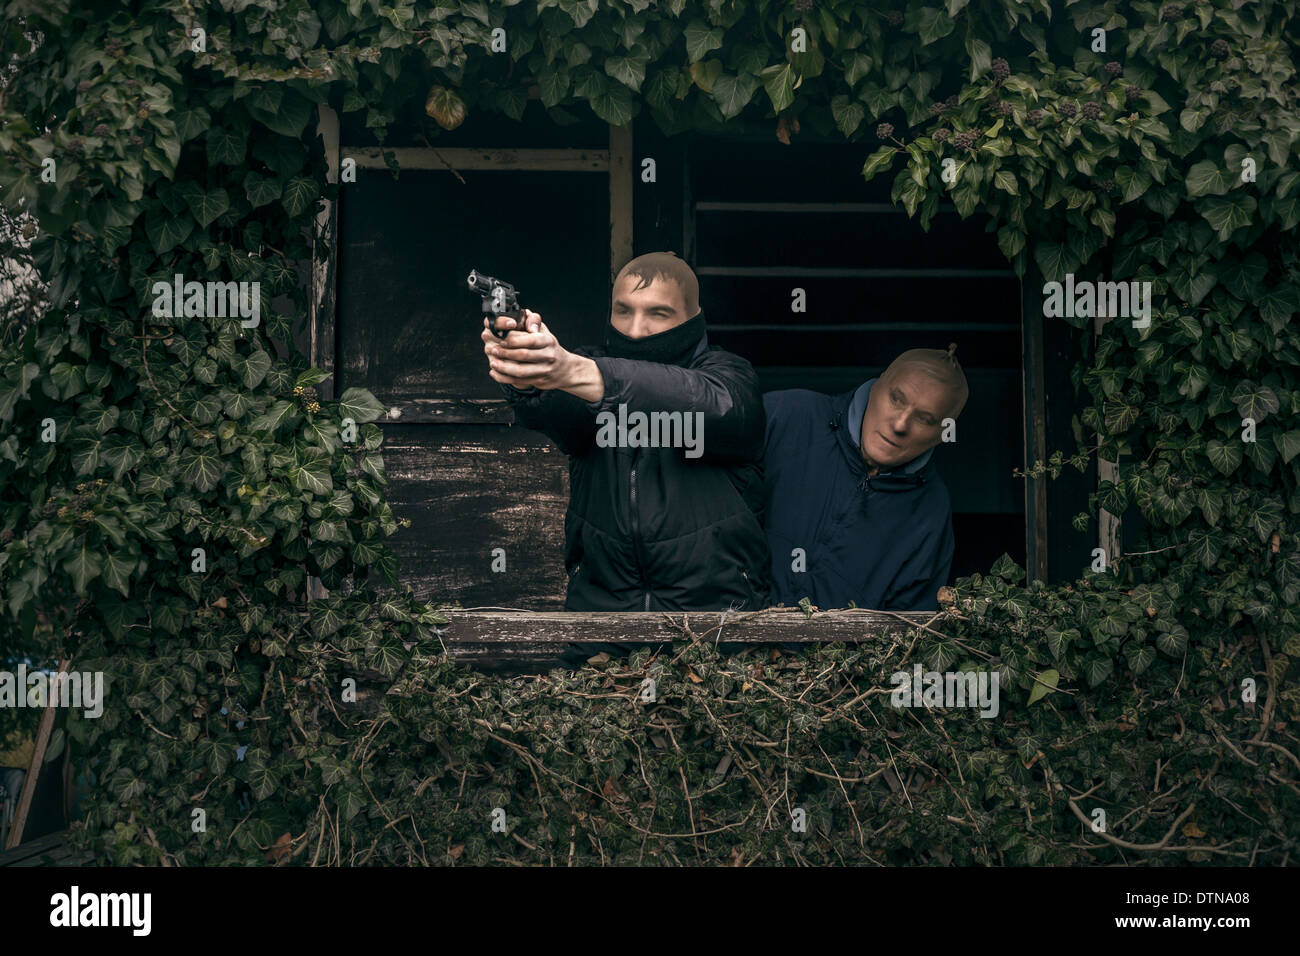 Two masked armed men hiding on overgrown porch of old cabin. - Stock Image